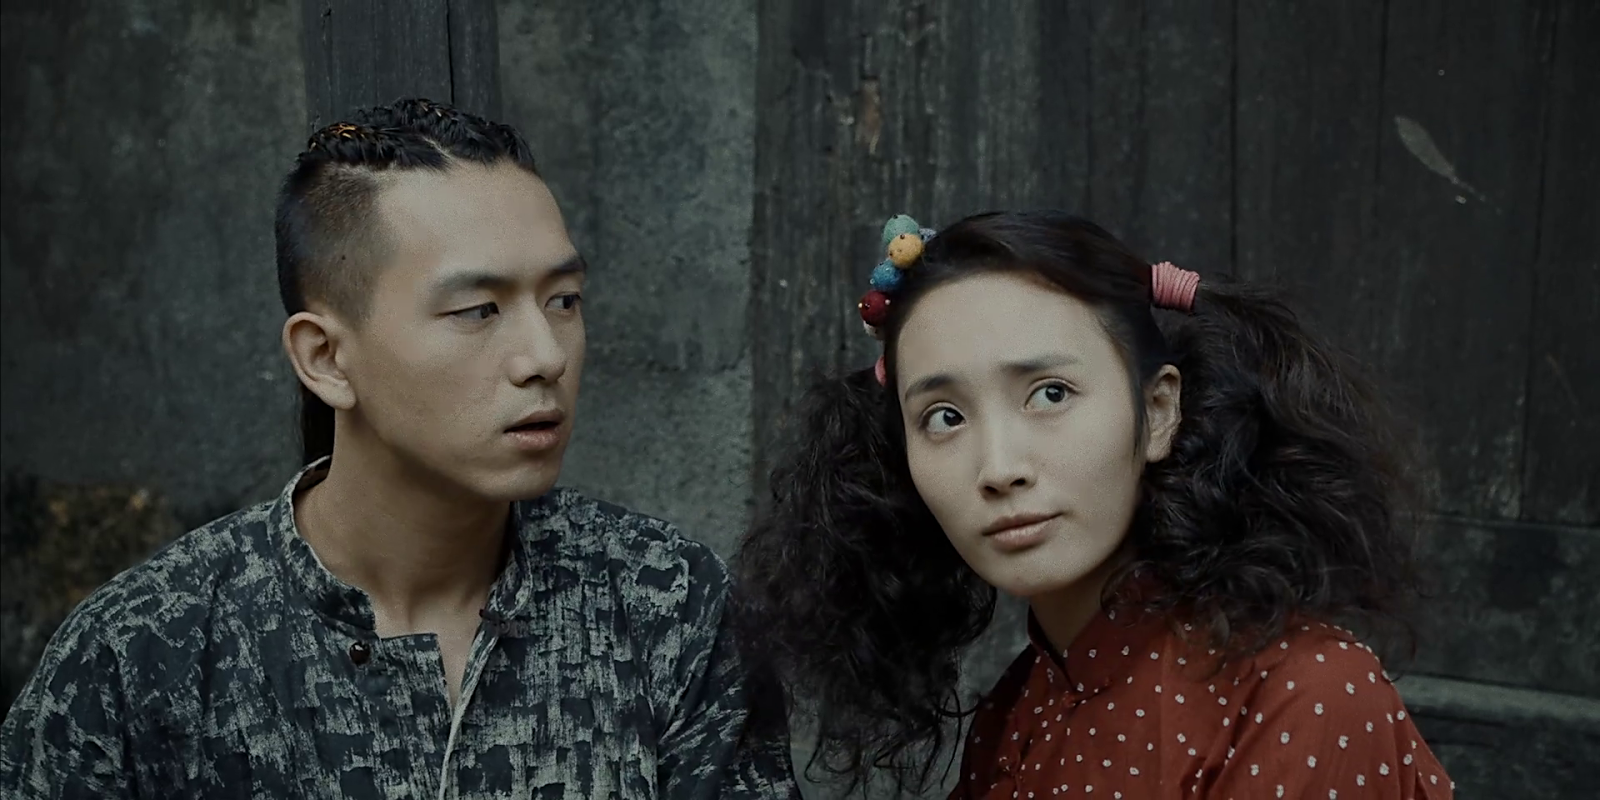 Tientsin Mystic Episode 3 Recap Mao Squishy Cute Rabbit Deyou Looks At Who Is Getting Frustrated And Says Lets Investigate This Nansheng Xue Family When Wants To Use His Police Id Goes Nah